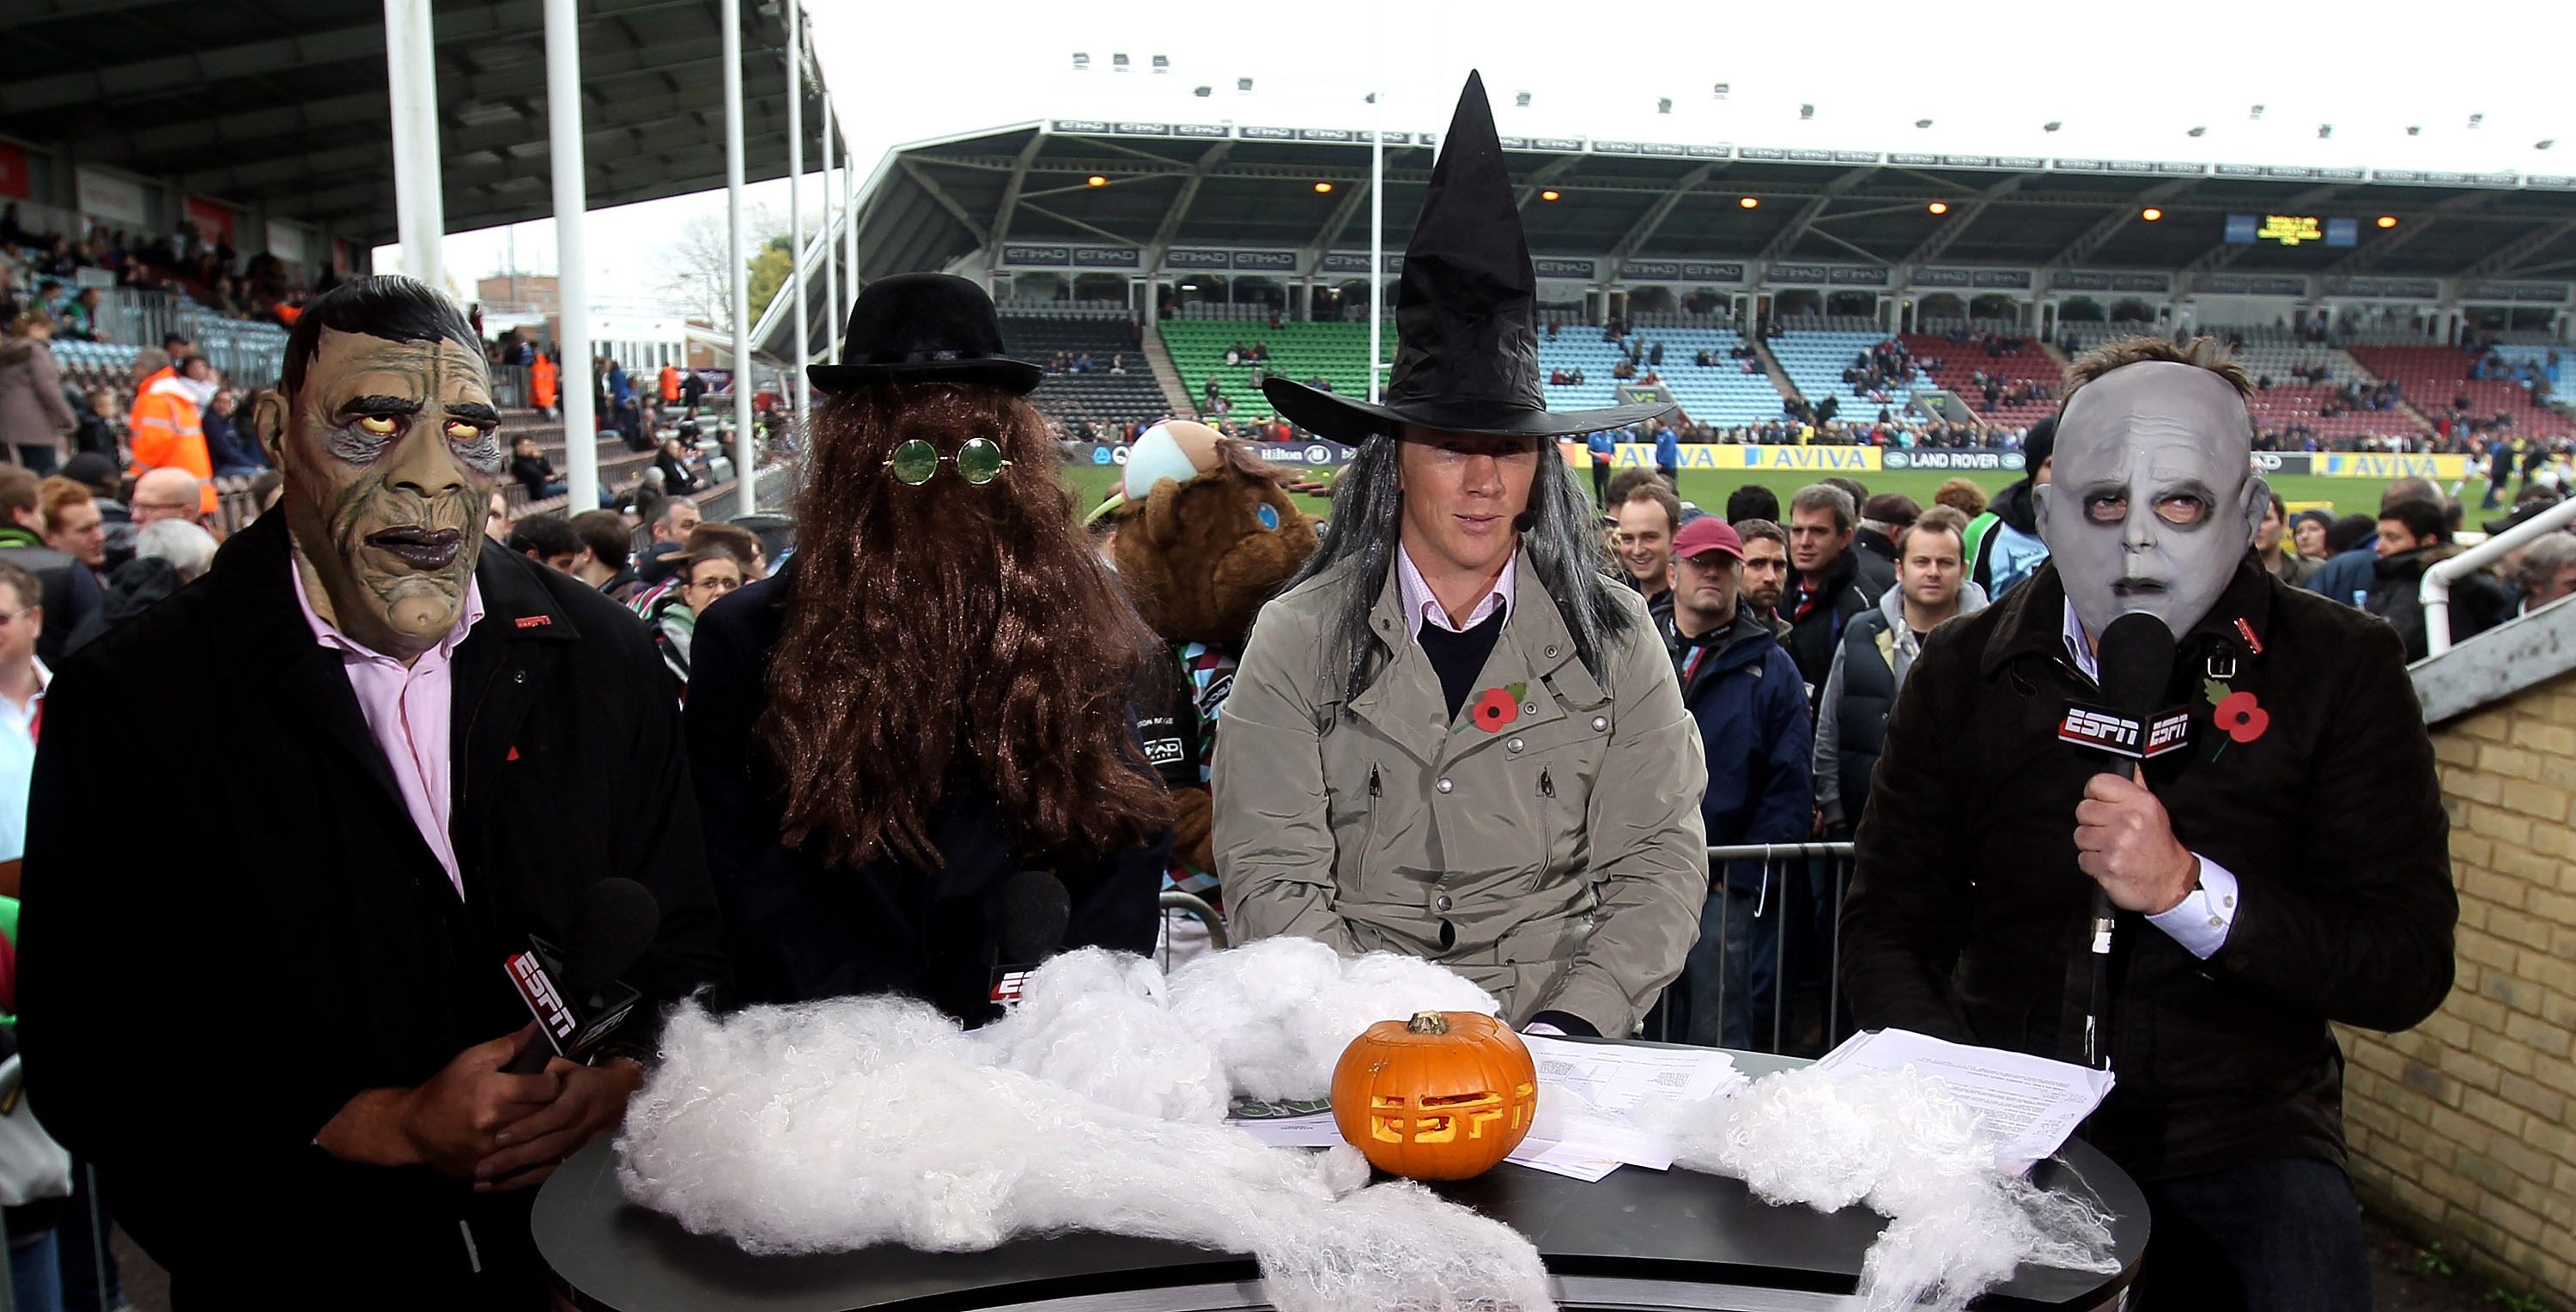 TWICKENHAM, ENGLAND - OCTOBER 31:  (L-R) Ben Kay, Austin Healey and Pete Richards all former England players now ESPN rugby pundits together with presenter Mark Durden-Smith dress up for Halloween during the Aviva Premiership match between Harlequins and